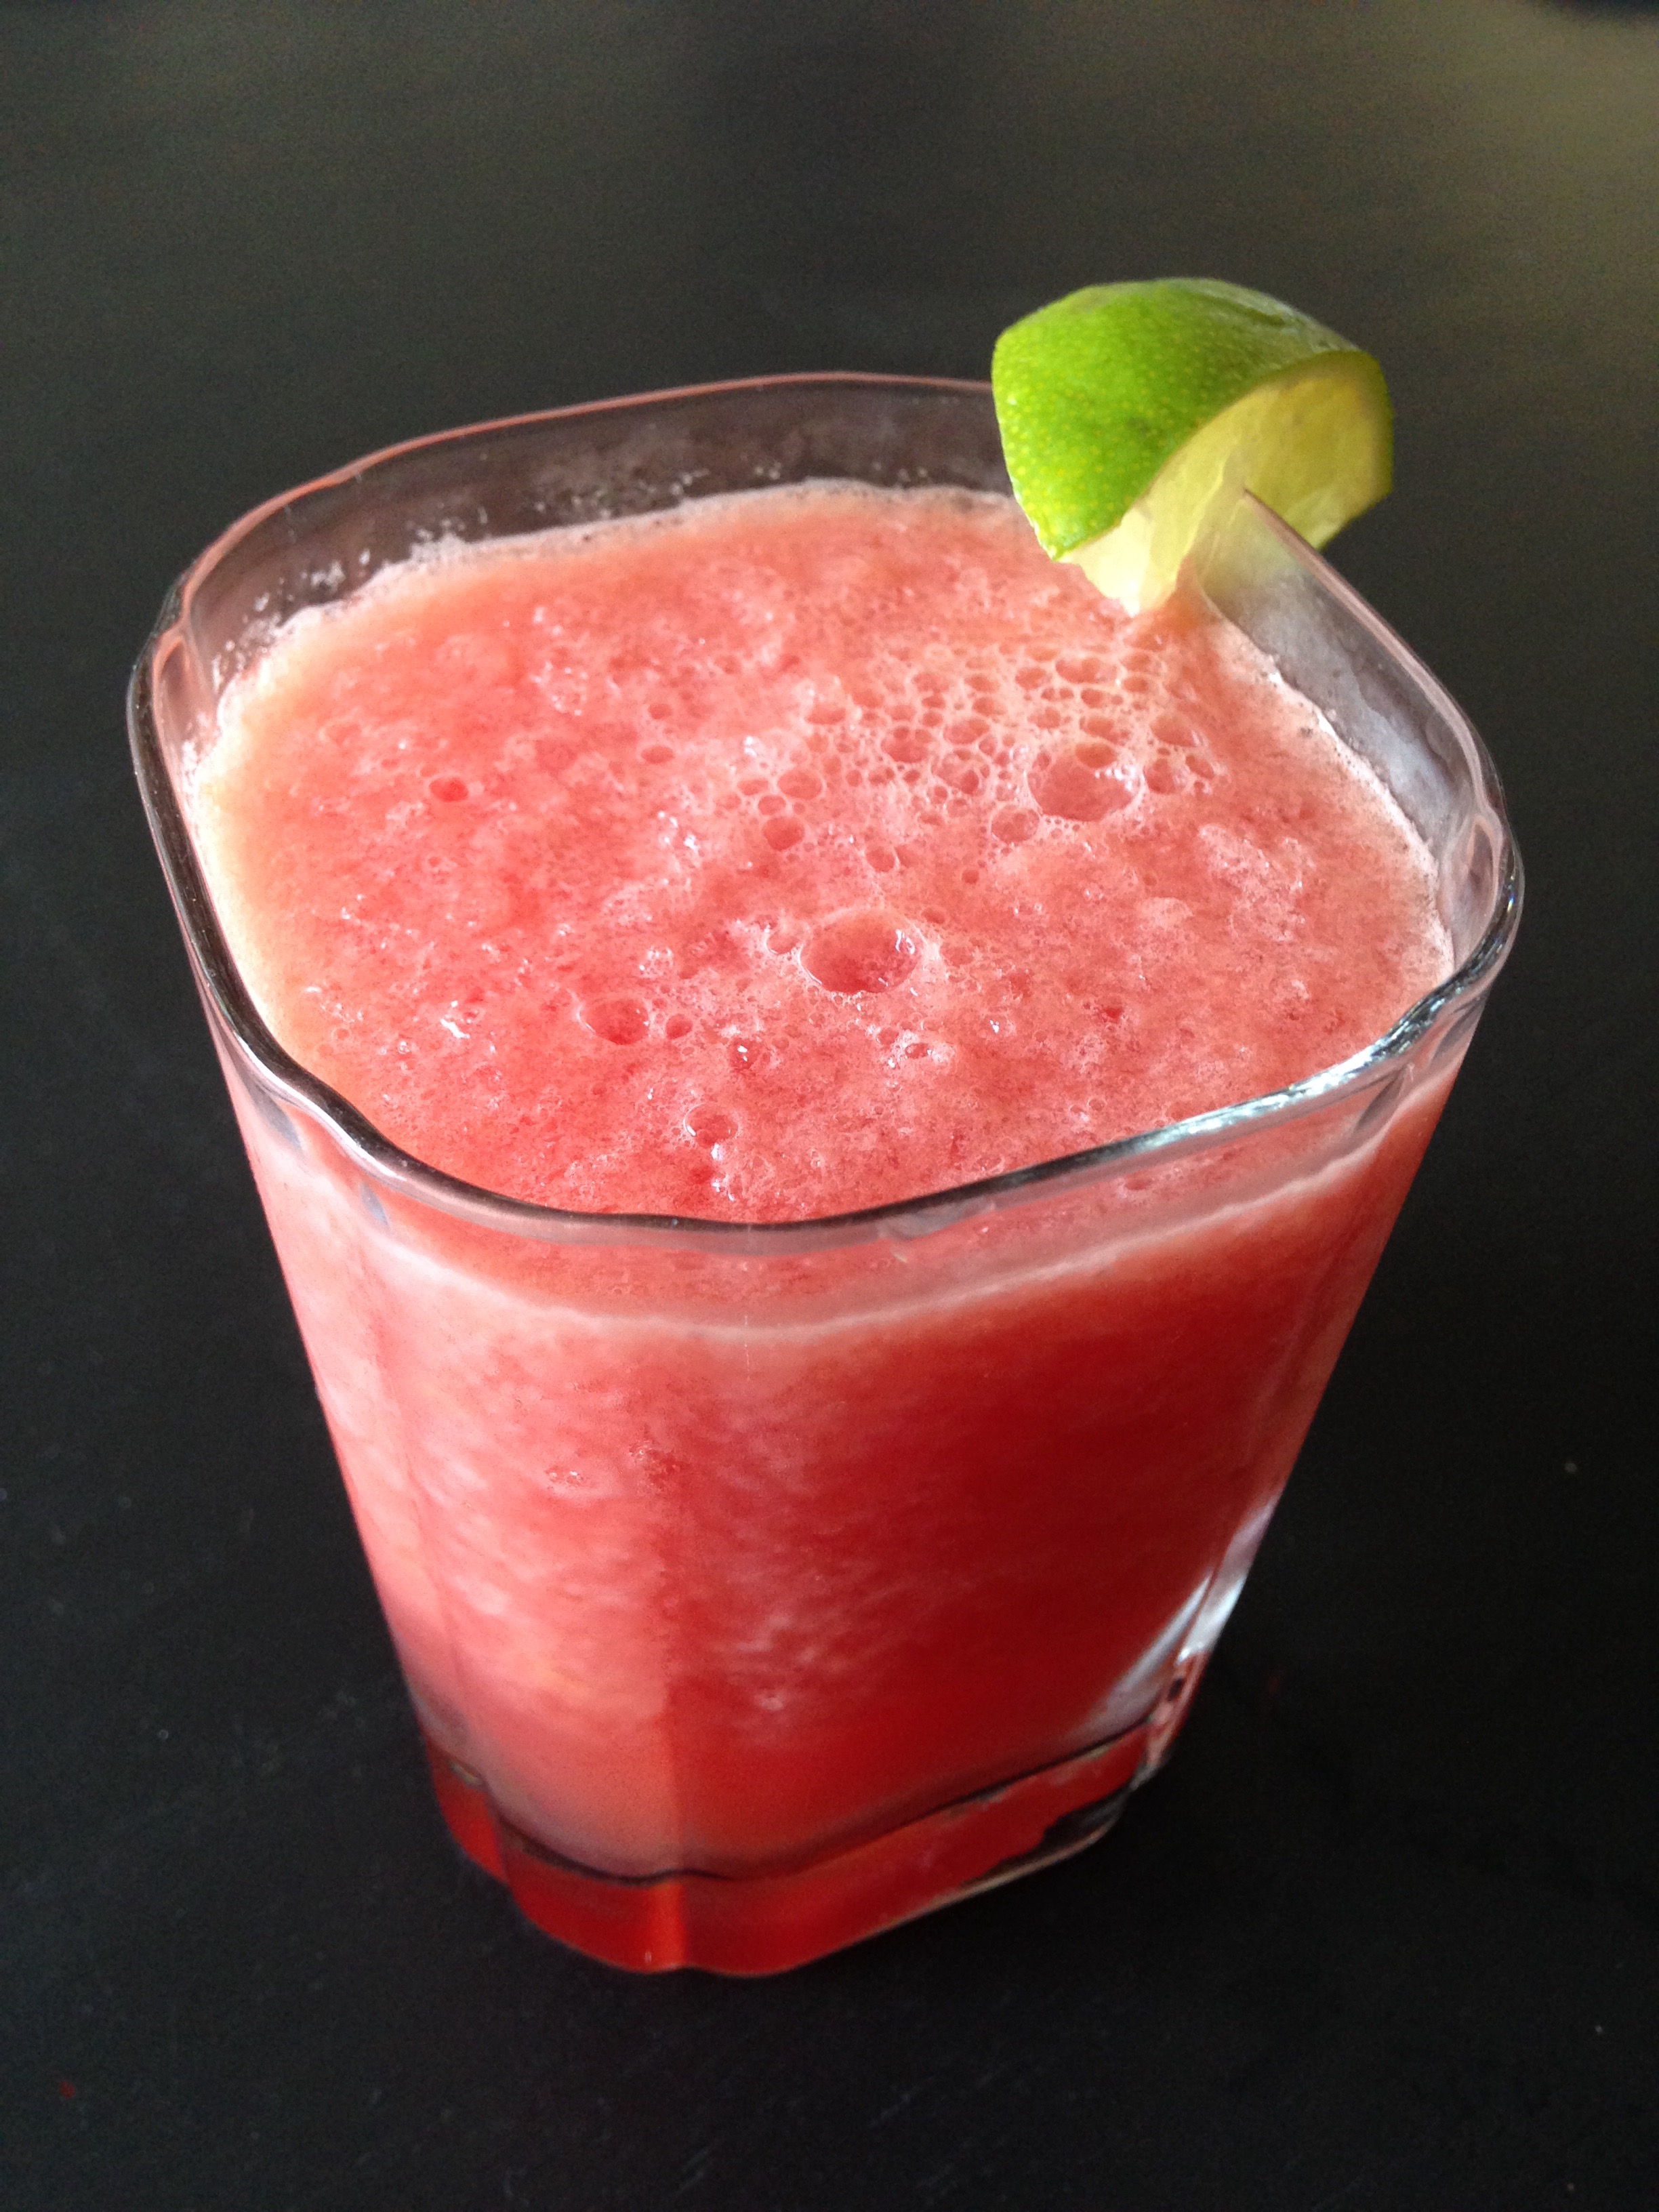 lemon anise slush strawberry rhubarb slush sake melon slush easy ...